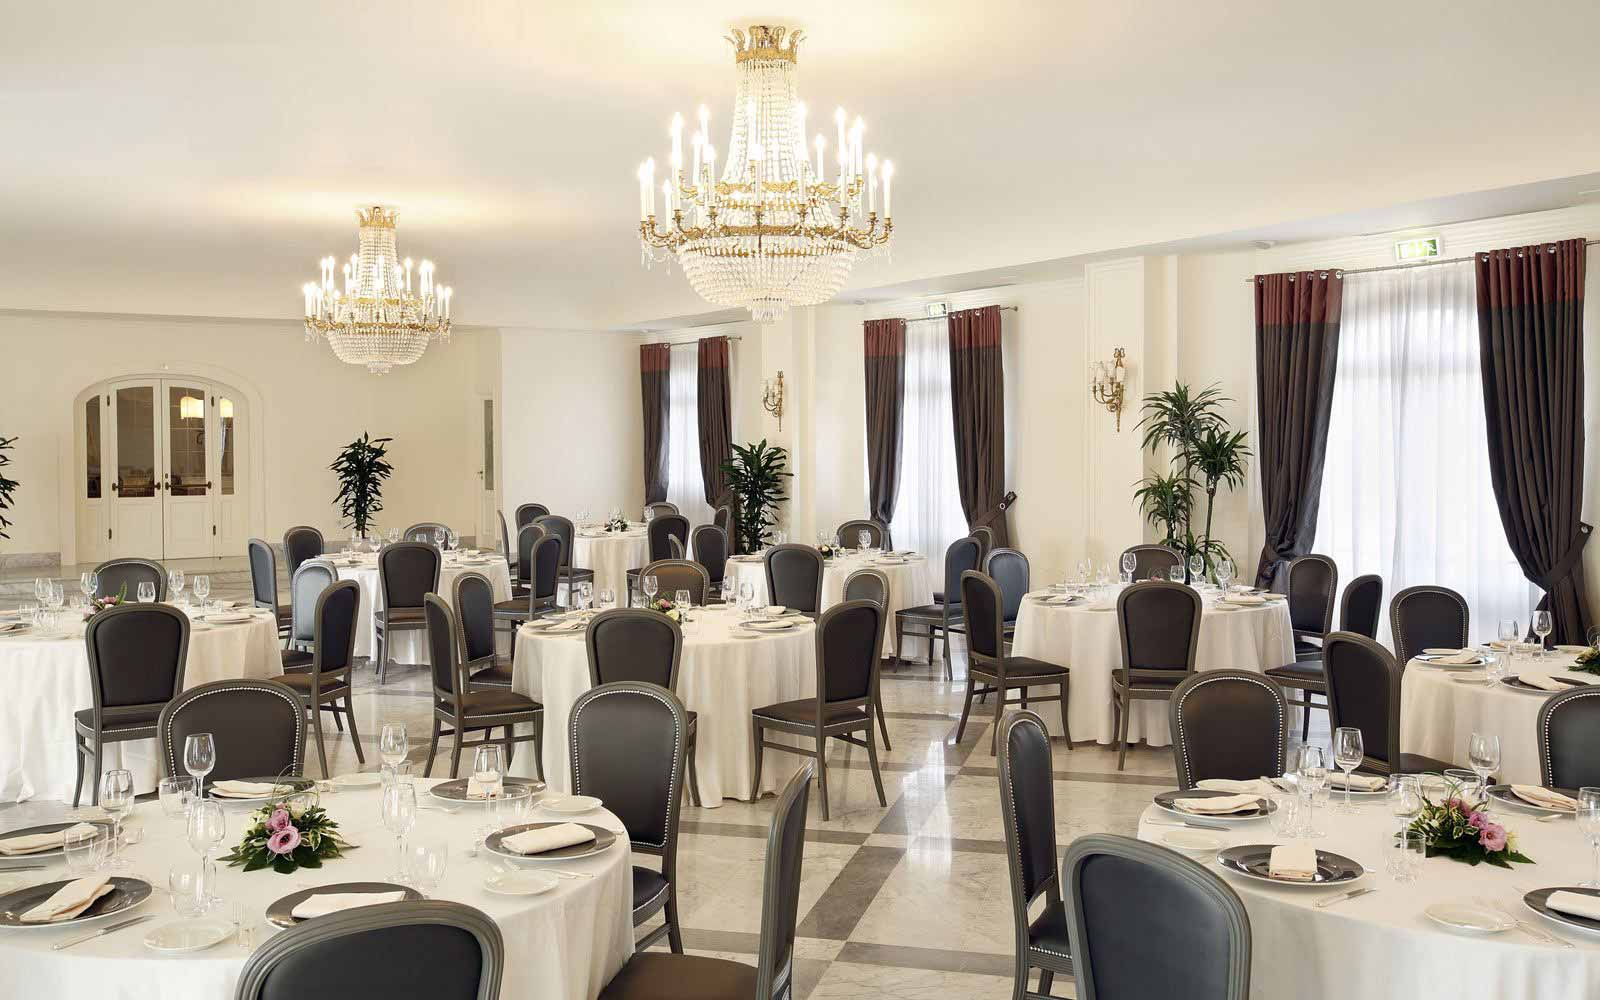 Restaurant at Hotel Giardino di Costanza